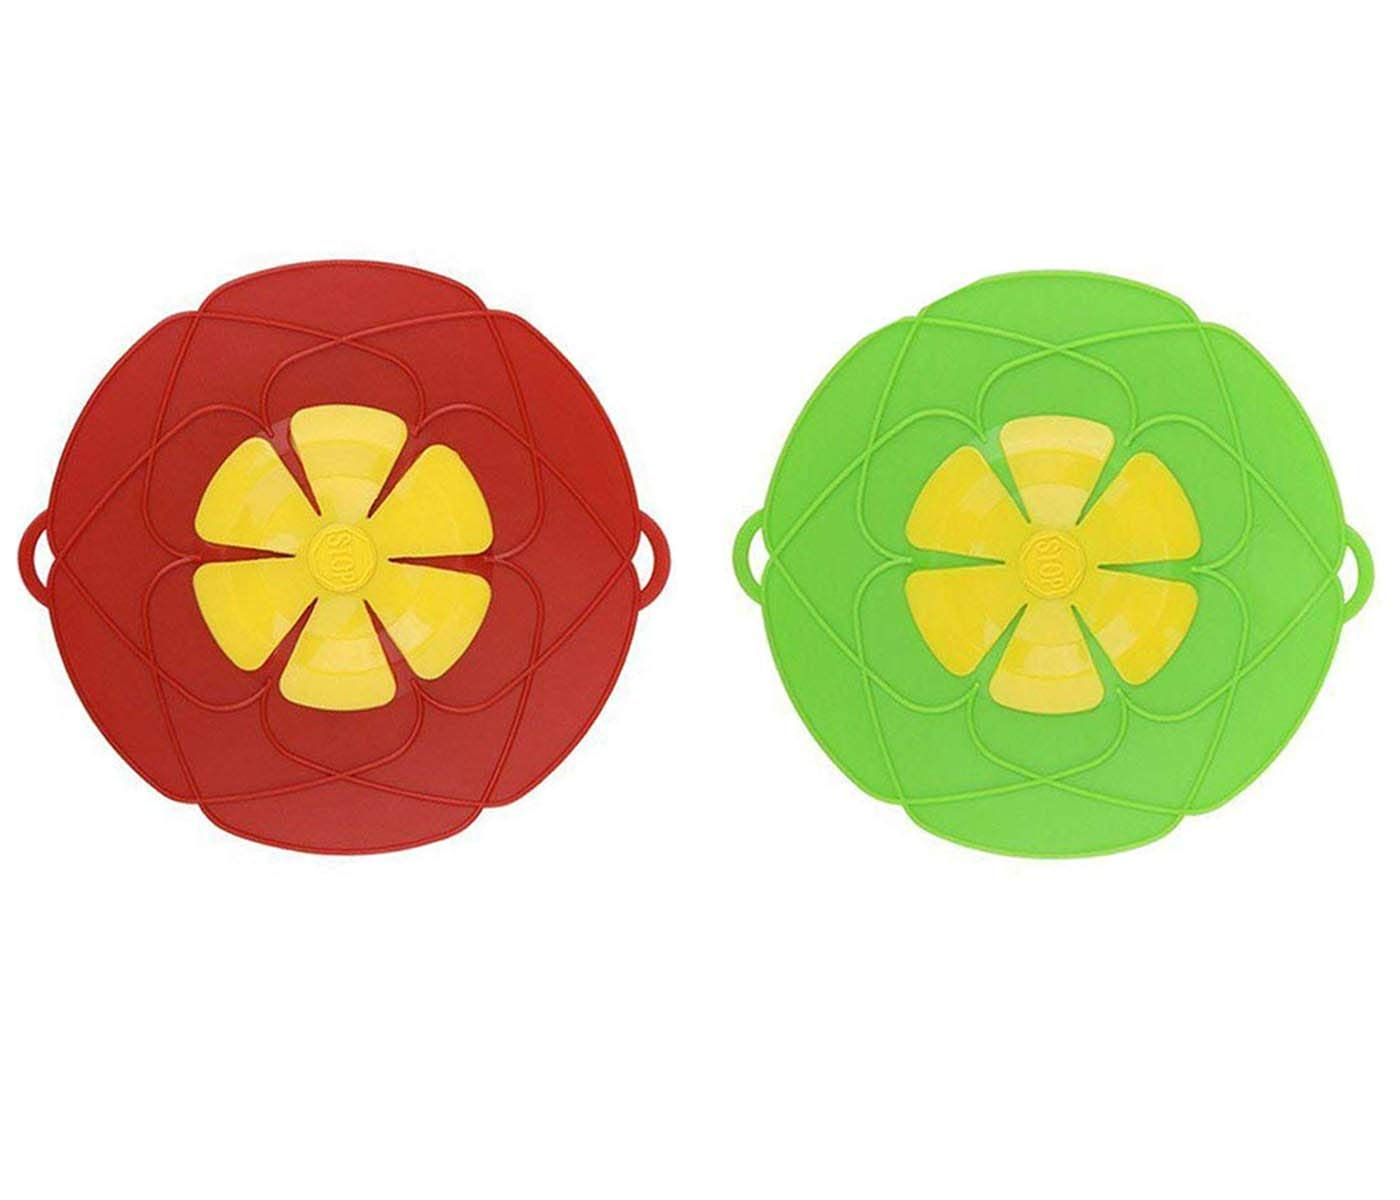 IOTOP 2 X Spill Stopper Lid Cover and Spill Stopper, Boil Over Safeguard,Silicone Spill Stopper Pot Pan Lid Multi-Function Kitchen Tool (Green and Red)